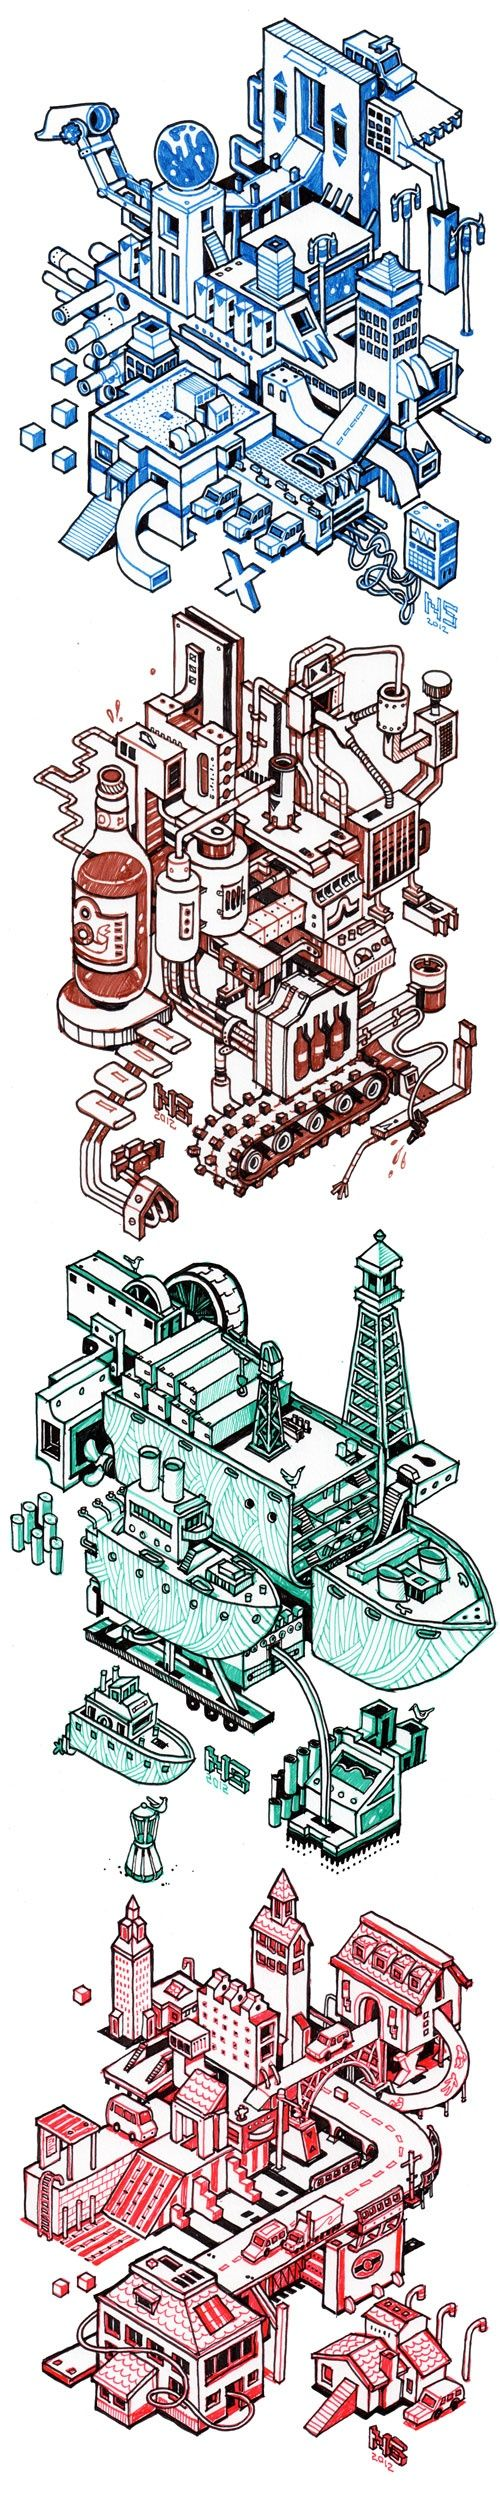 different color isometric drawings by http://nigelsussman.com